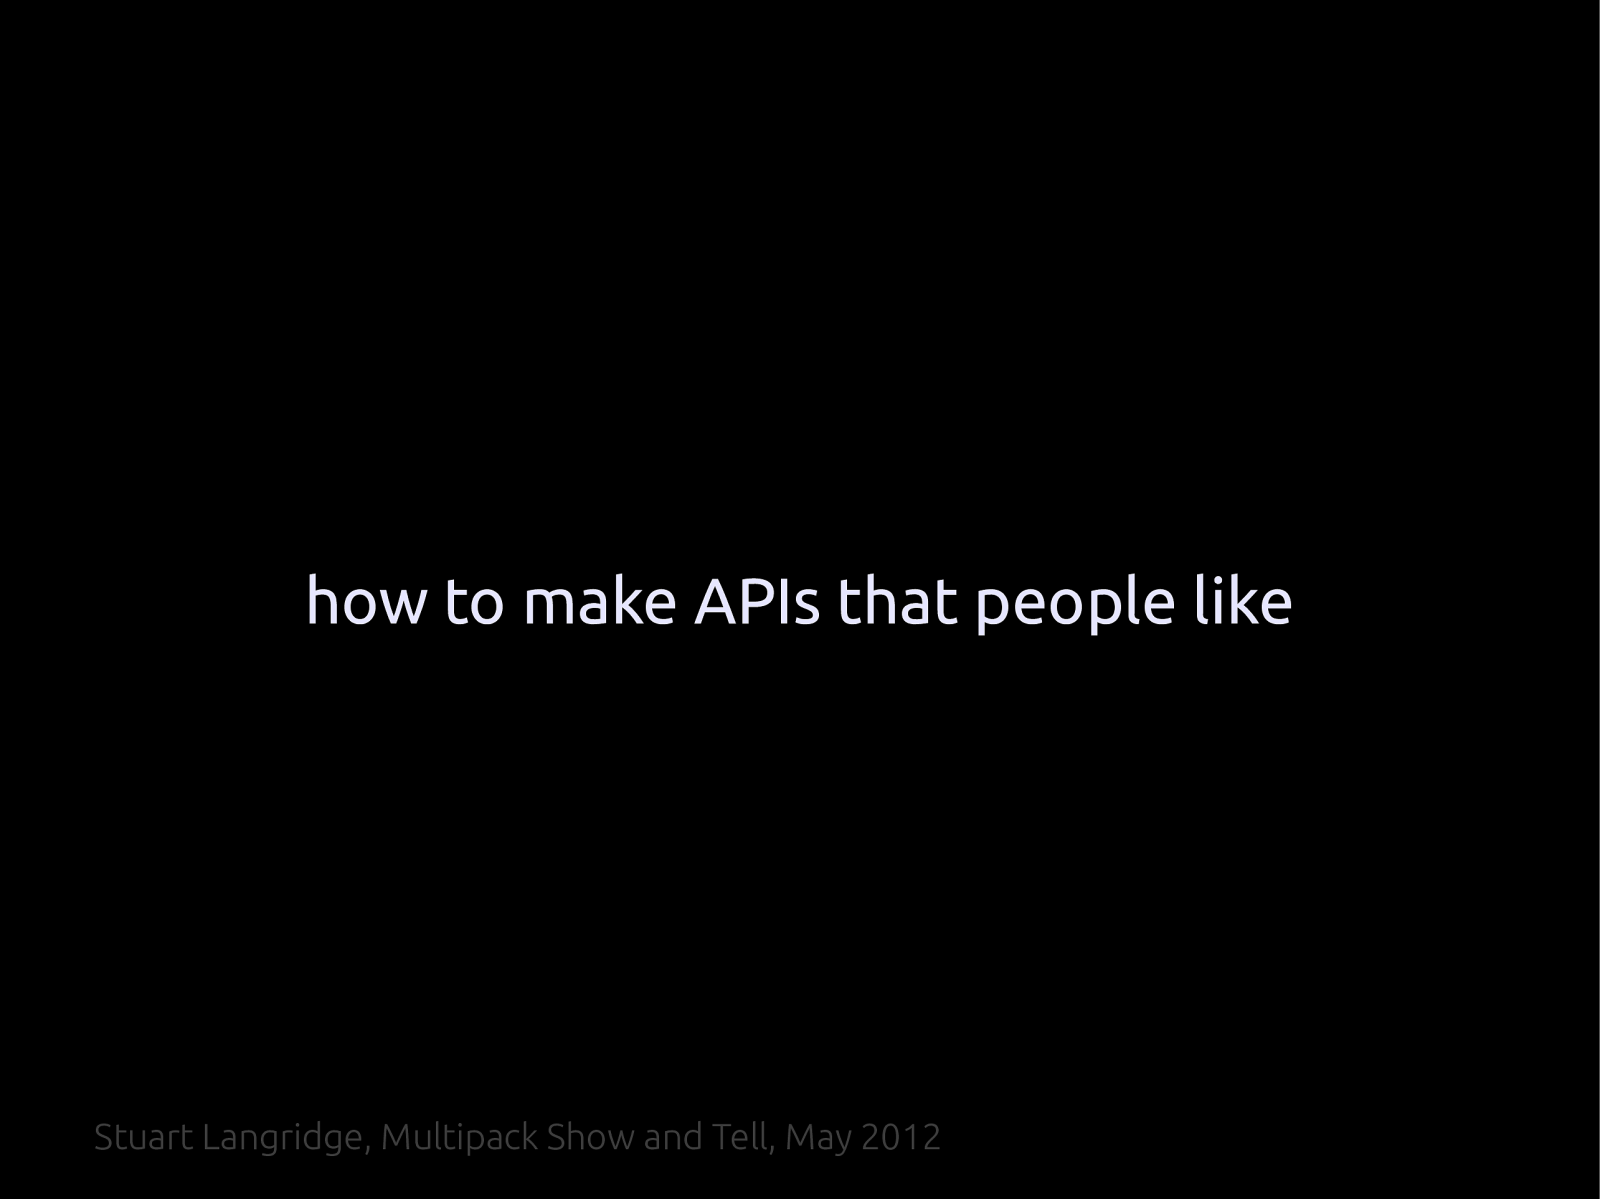 How to make APIs that people like